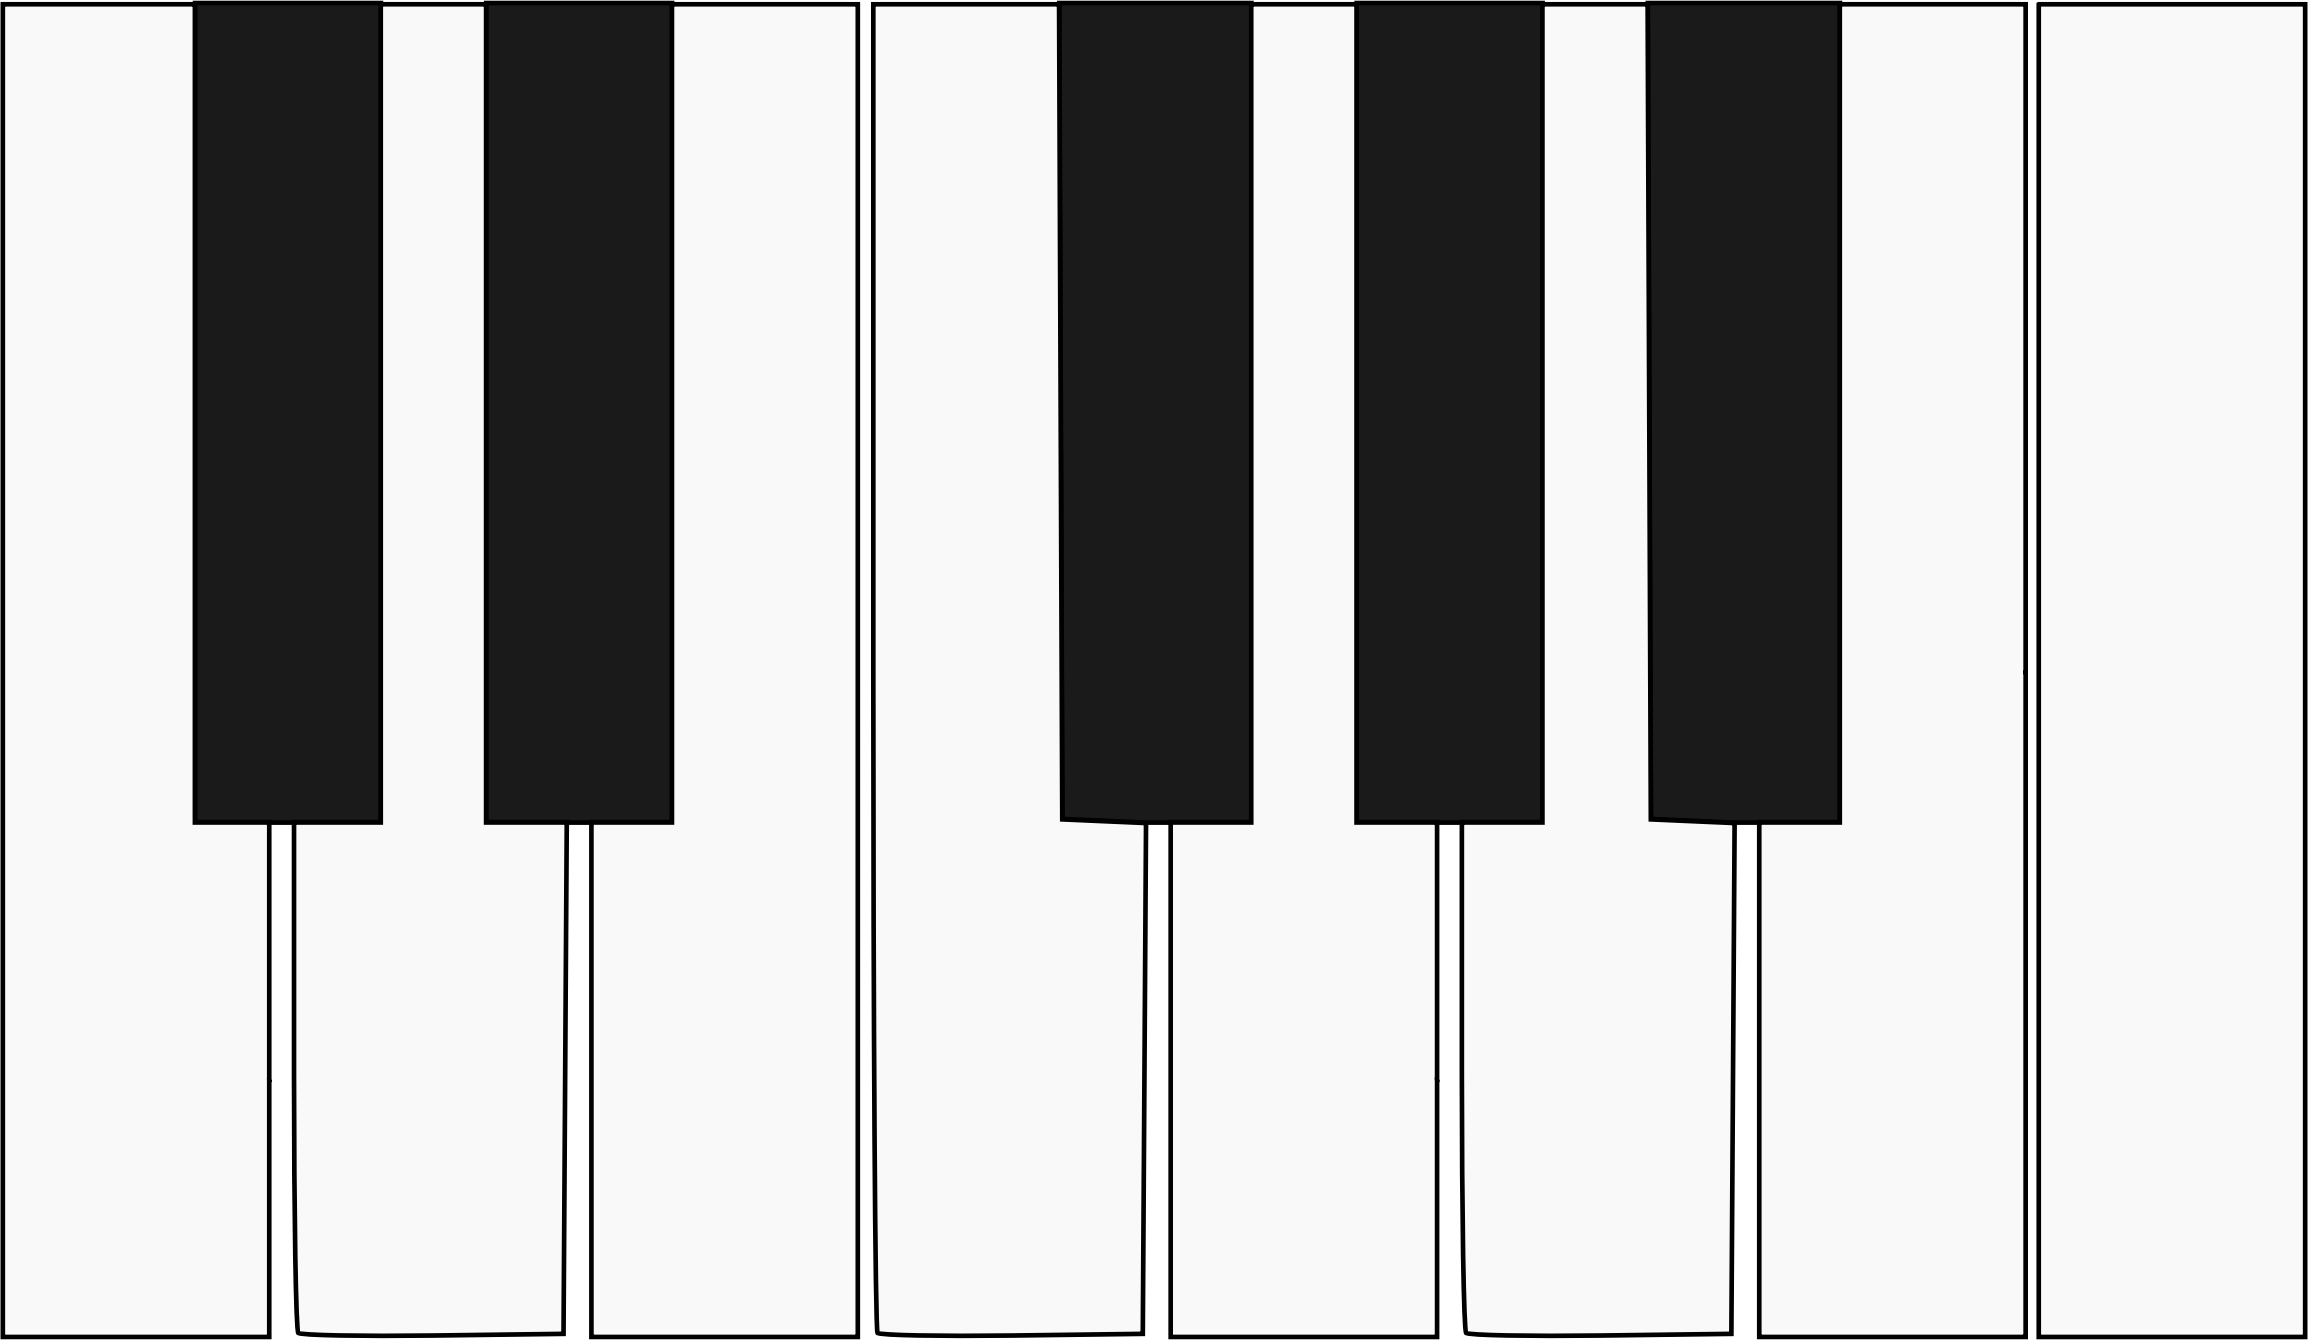 Piano keyboard png. One octave icons free